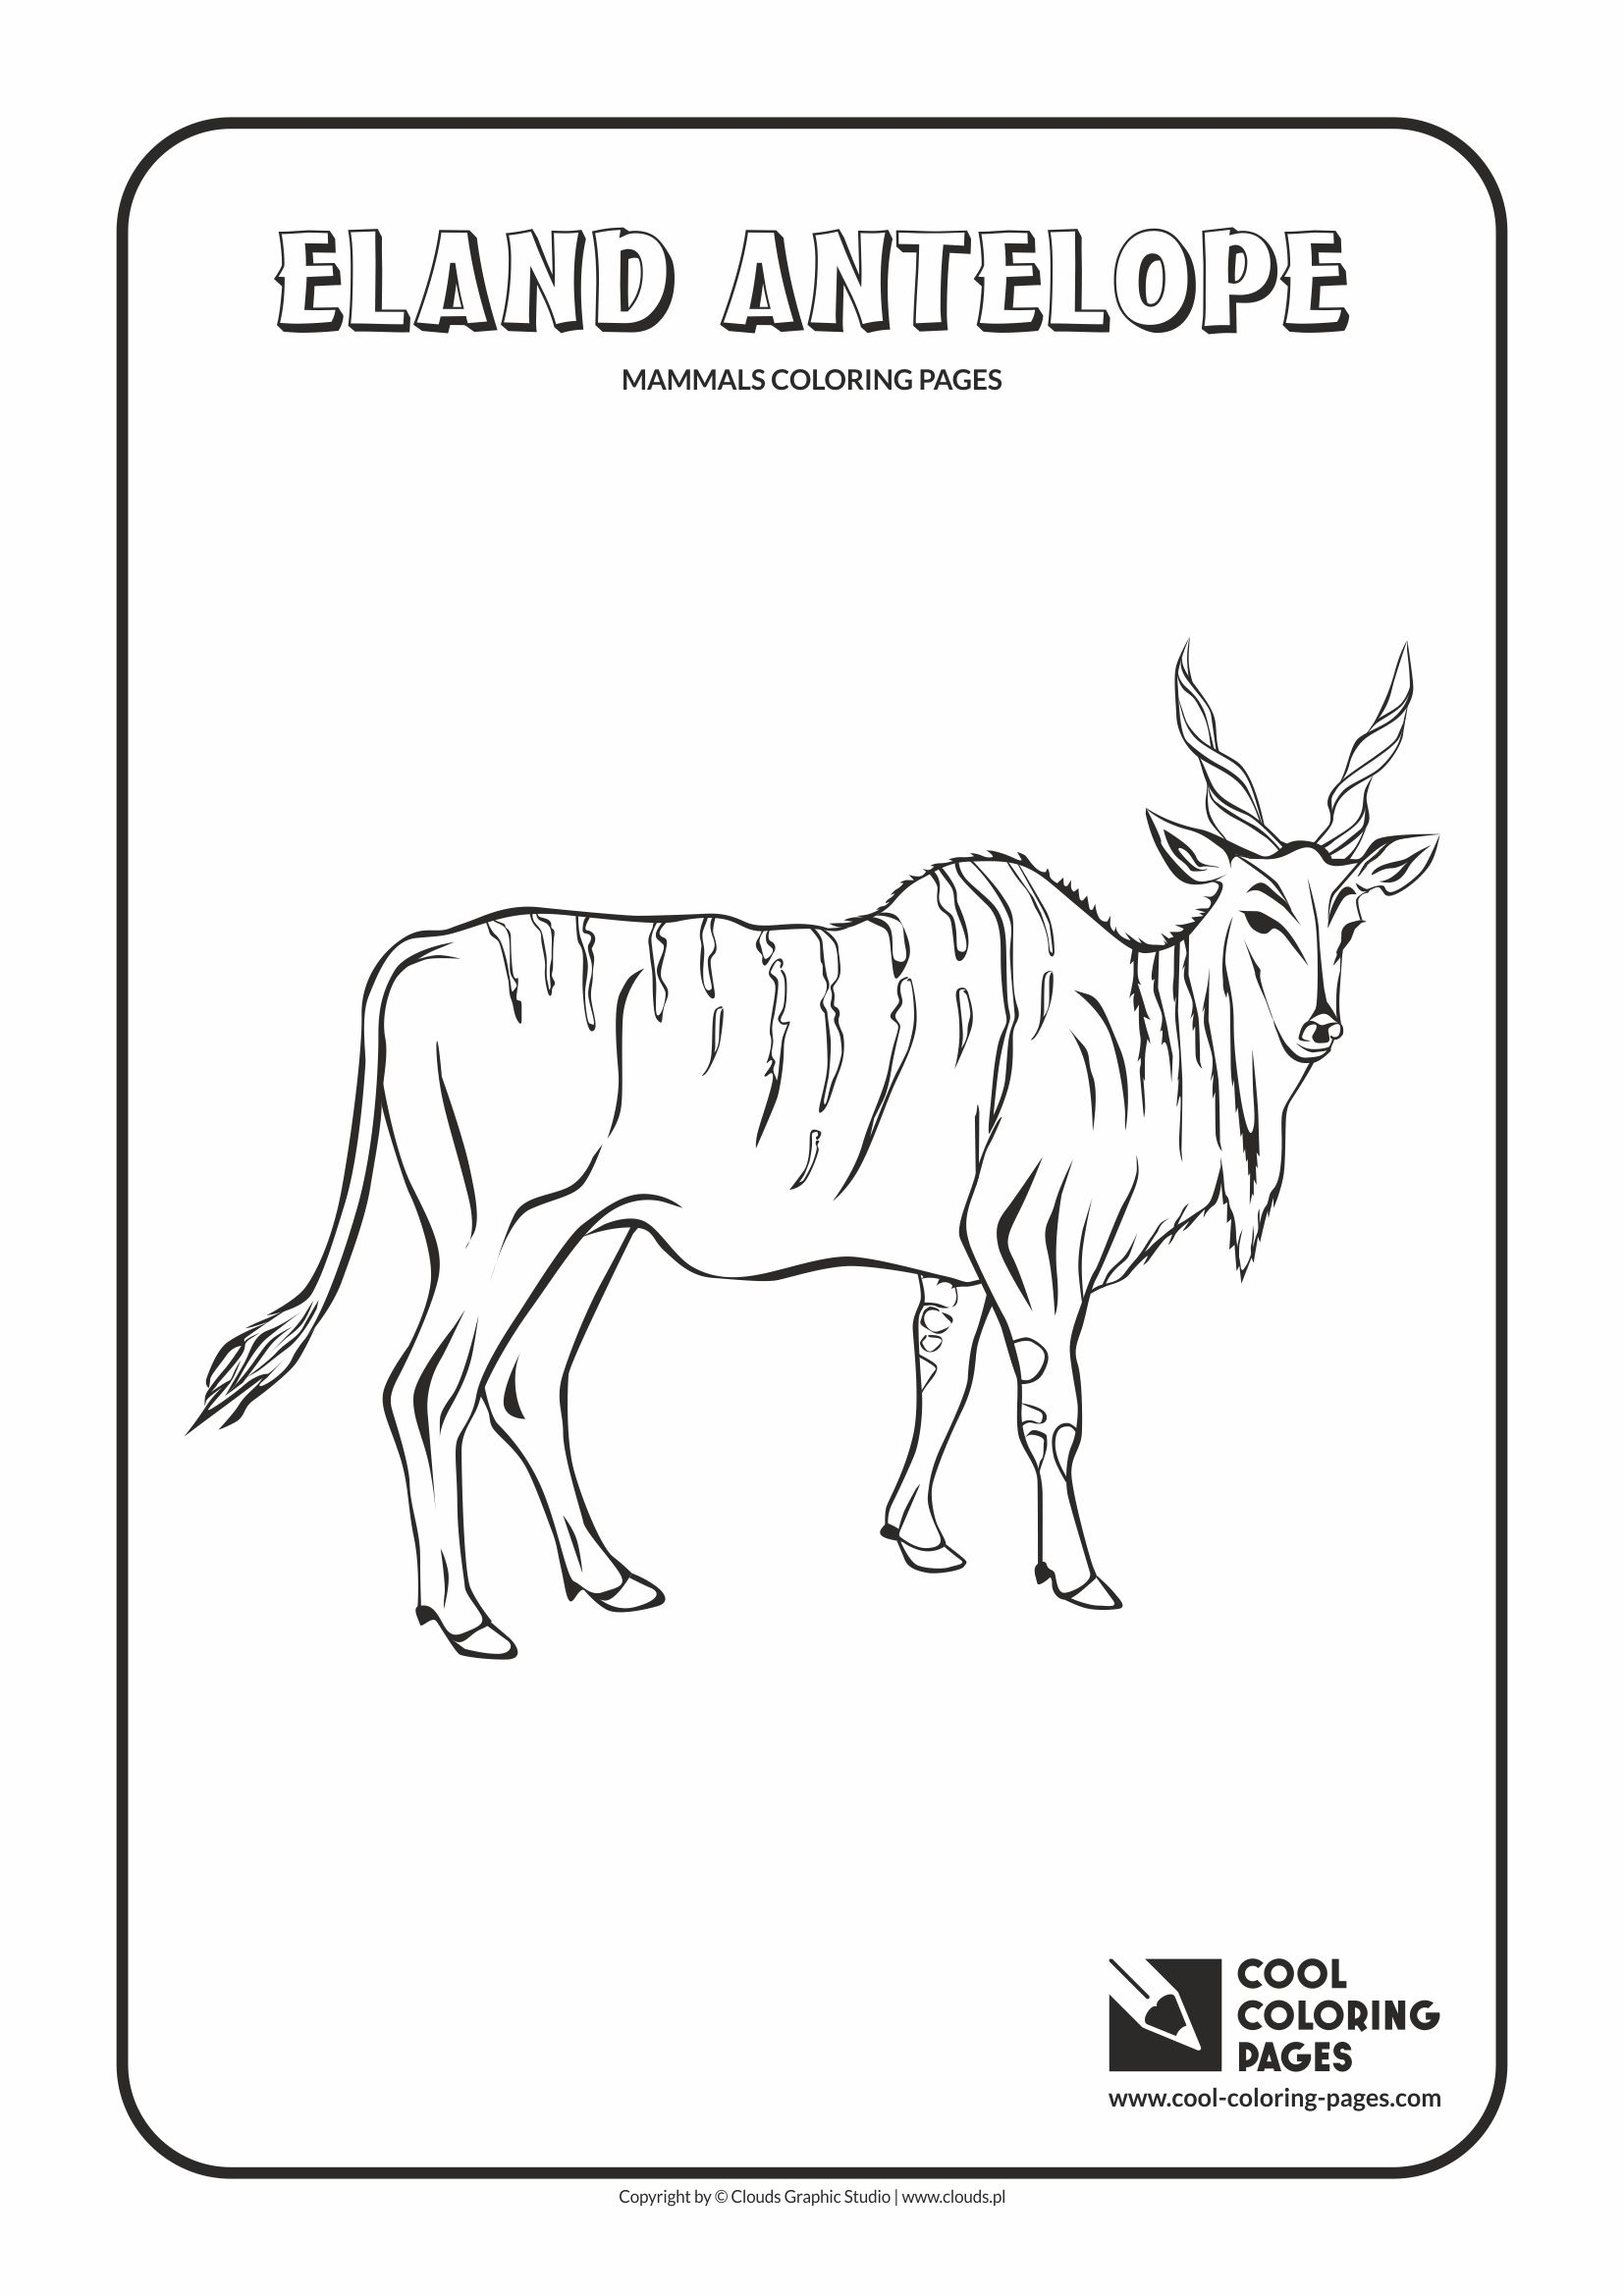 Cool Coloring Pages - Animals / Antelope eland / Coloring page with antelope eland